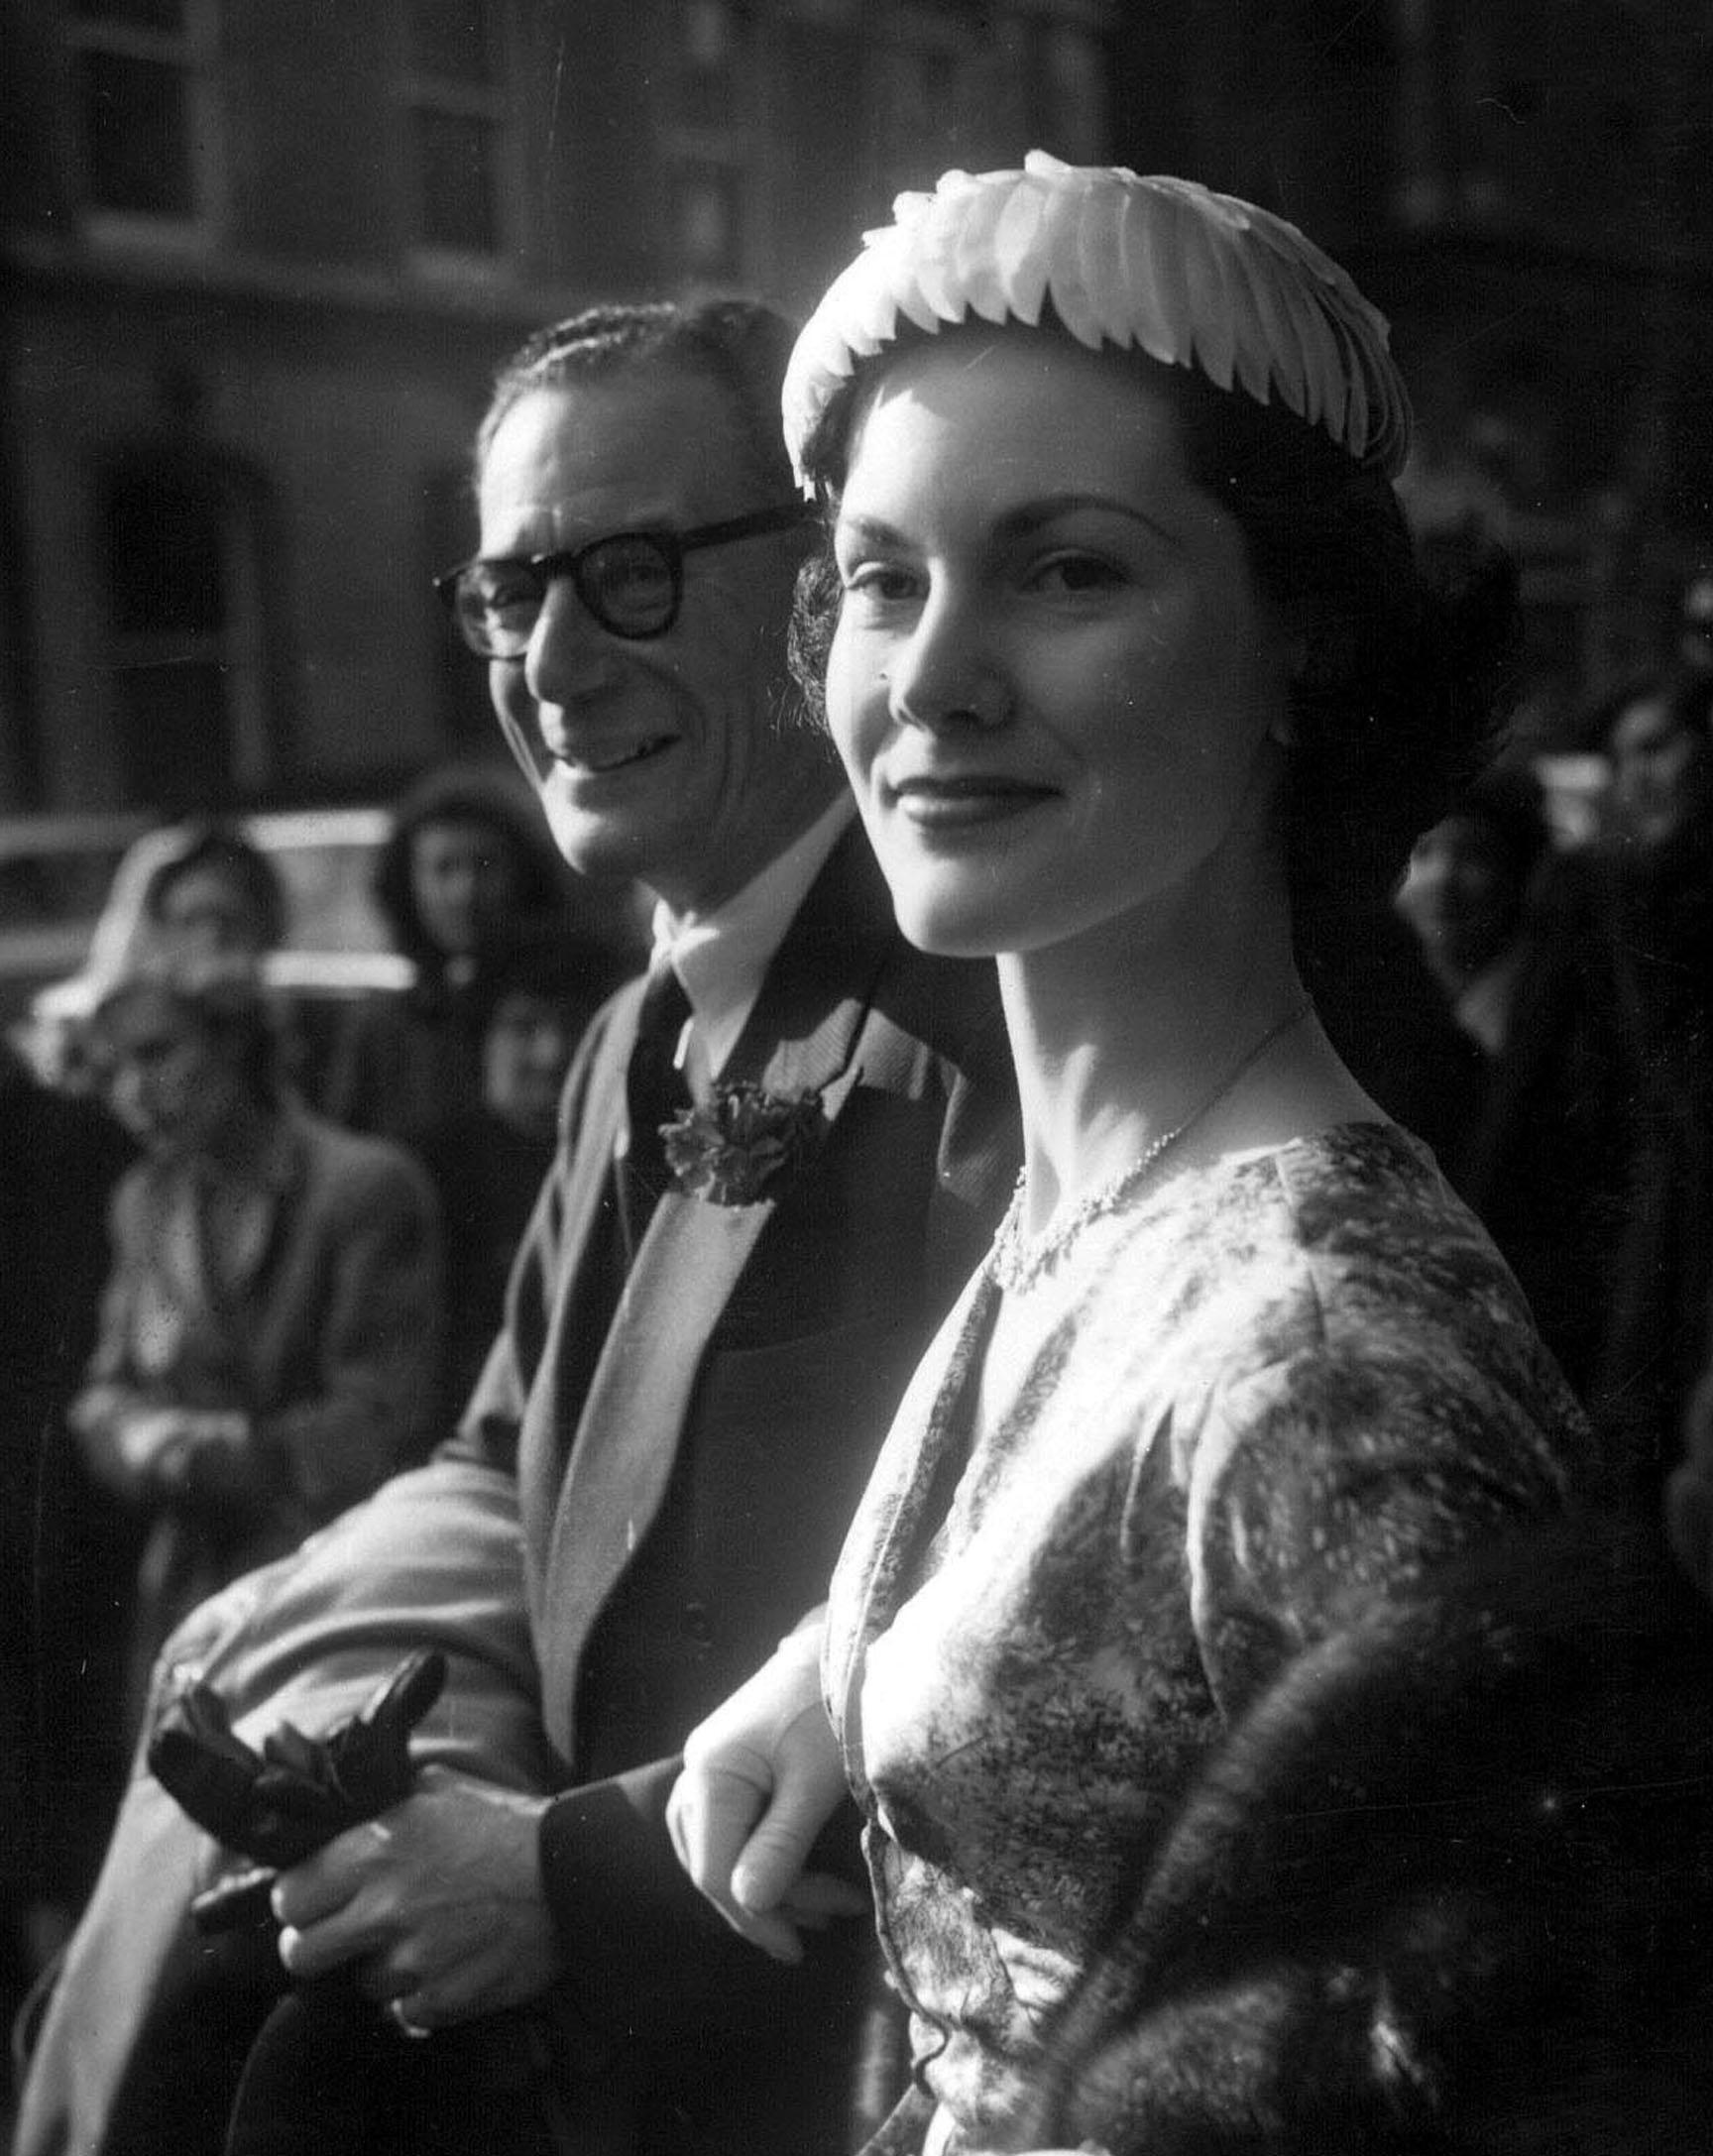 Val Gielgud, 54, head of BBC sound drama, with his new bride, actress Monica Grey, 24, leaving Caxton Hall in London, after their wedding on 10 February 1955.